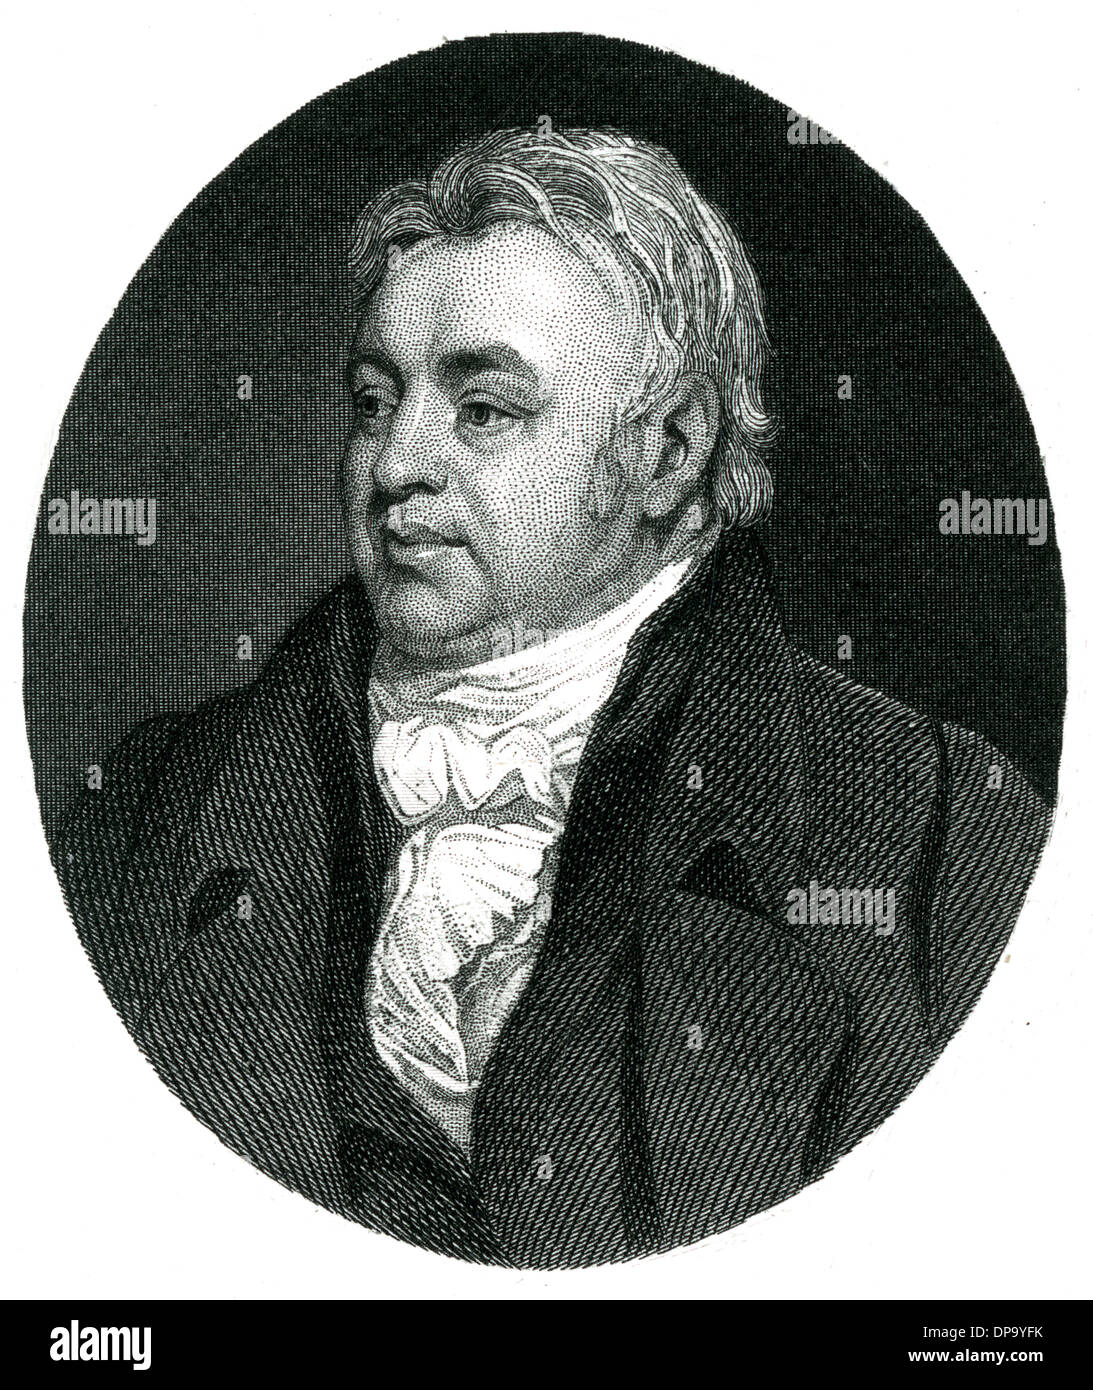 SAMUEL TAYLOR COLERIDGE - Stock Image